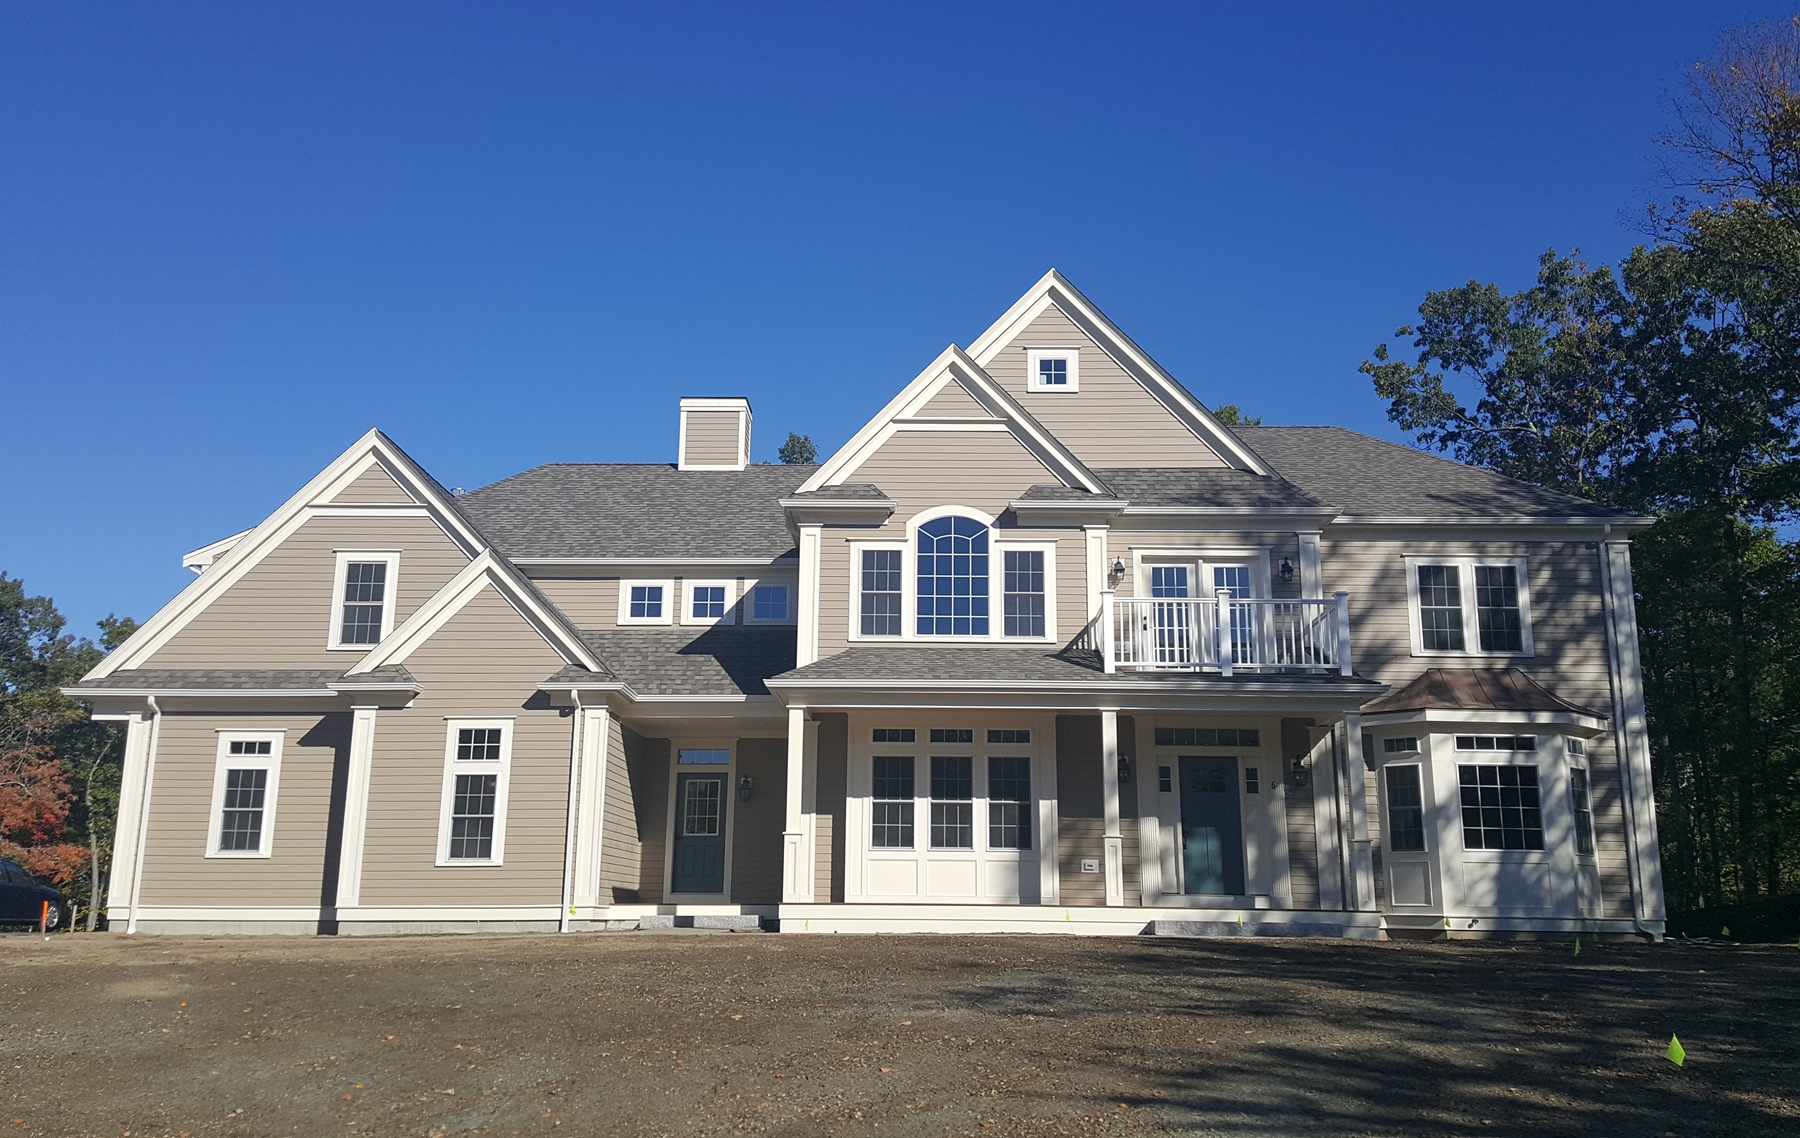 Single Family Home for Sale at Highland Park New Home Kennedy Model Lot 6 Stoney Brook Road Hopkinton, Massachusetts 01748 United States